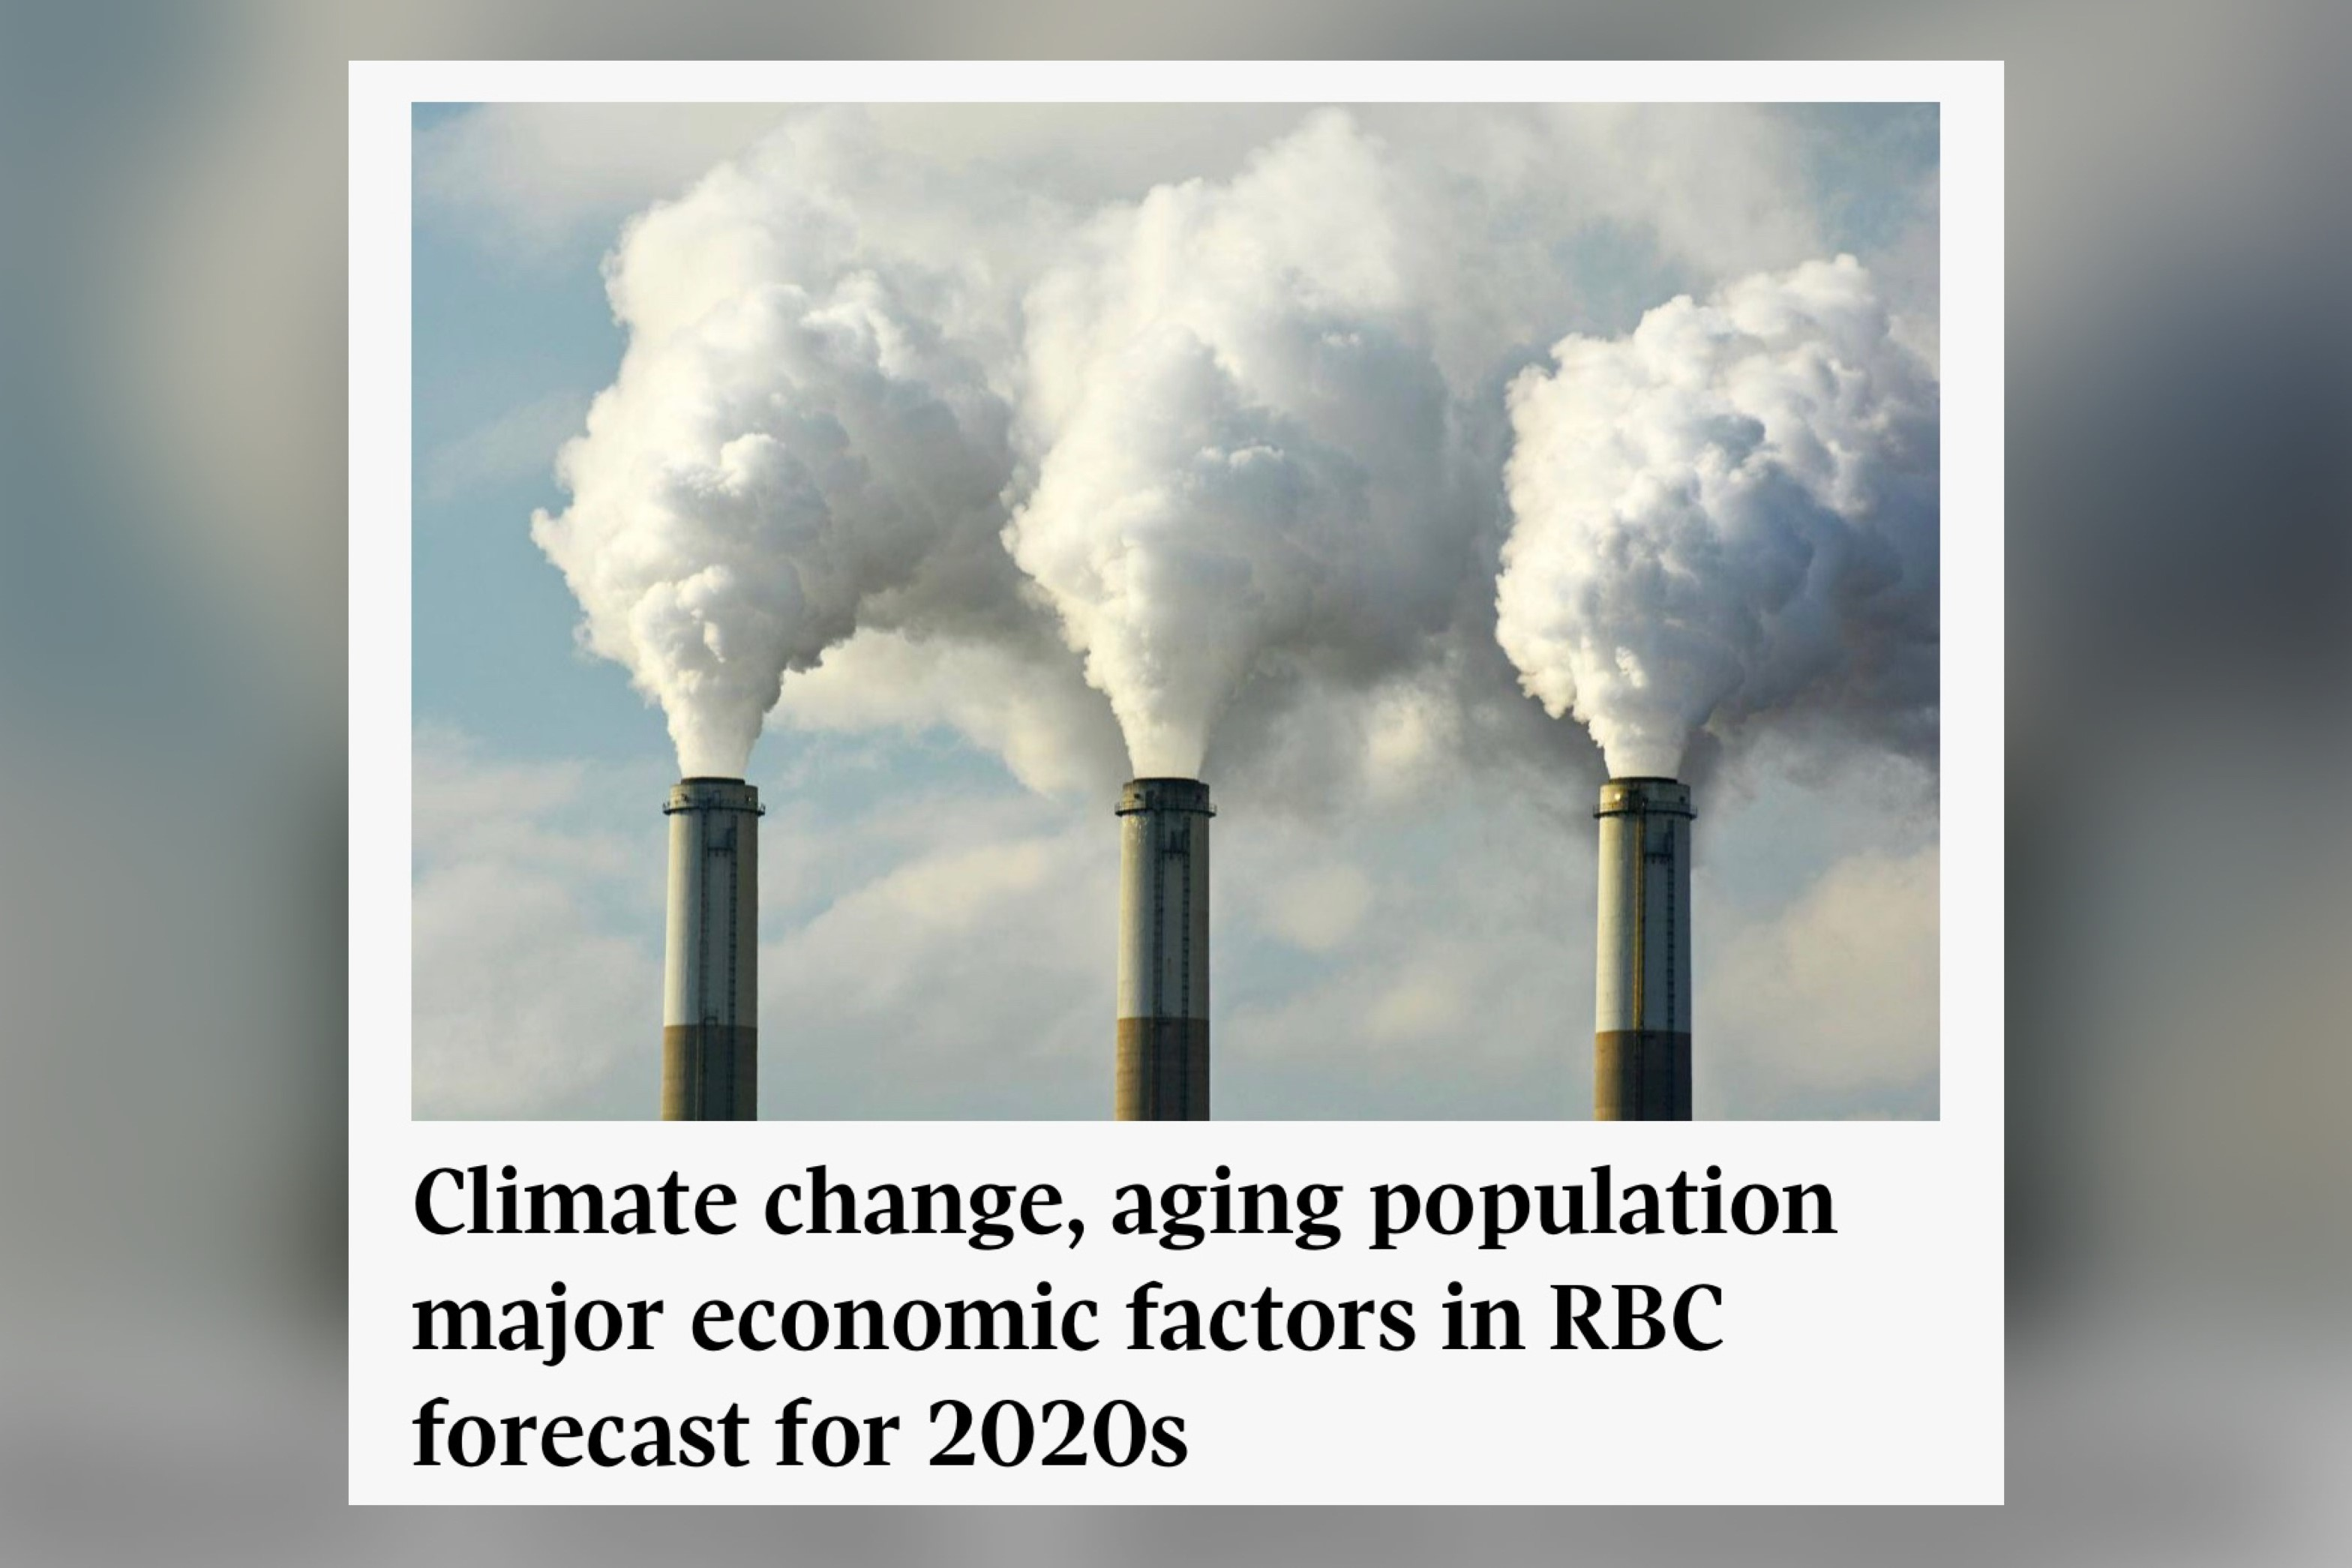 Climate change, aging population major economic factors in RBC forecast for 2020s